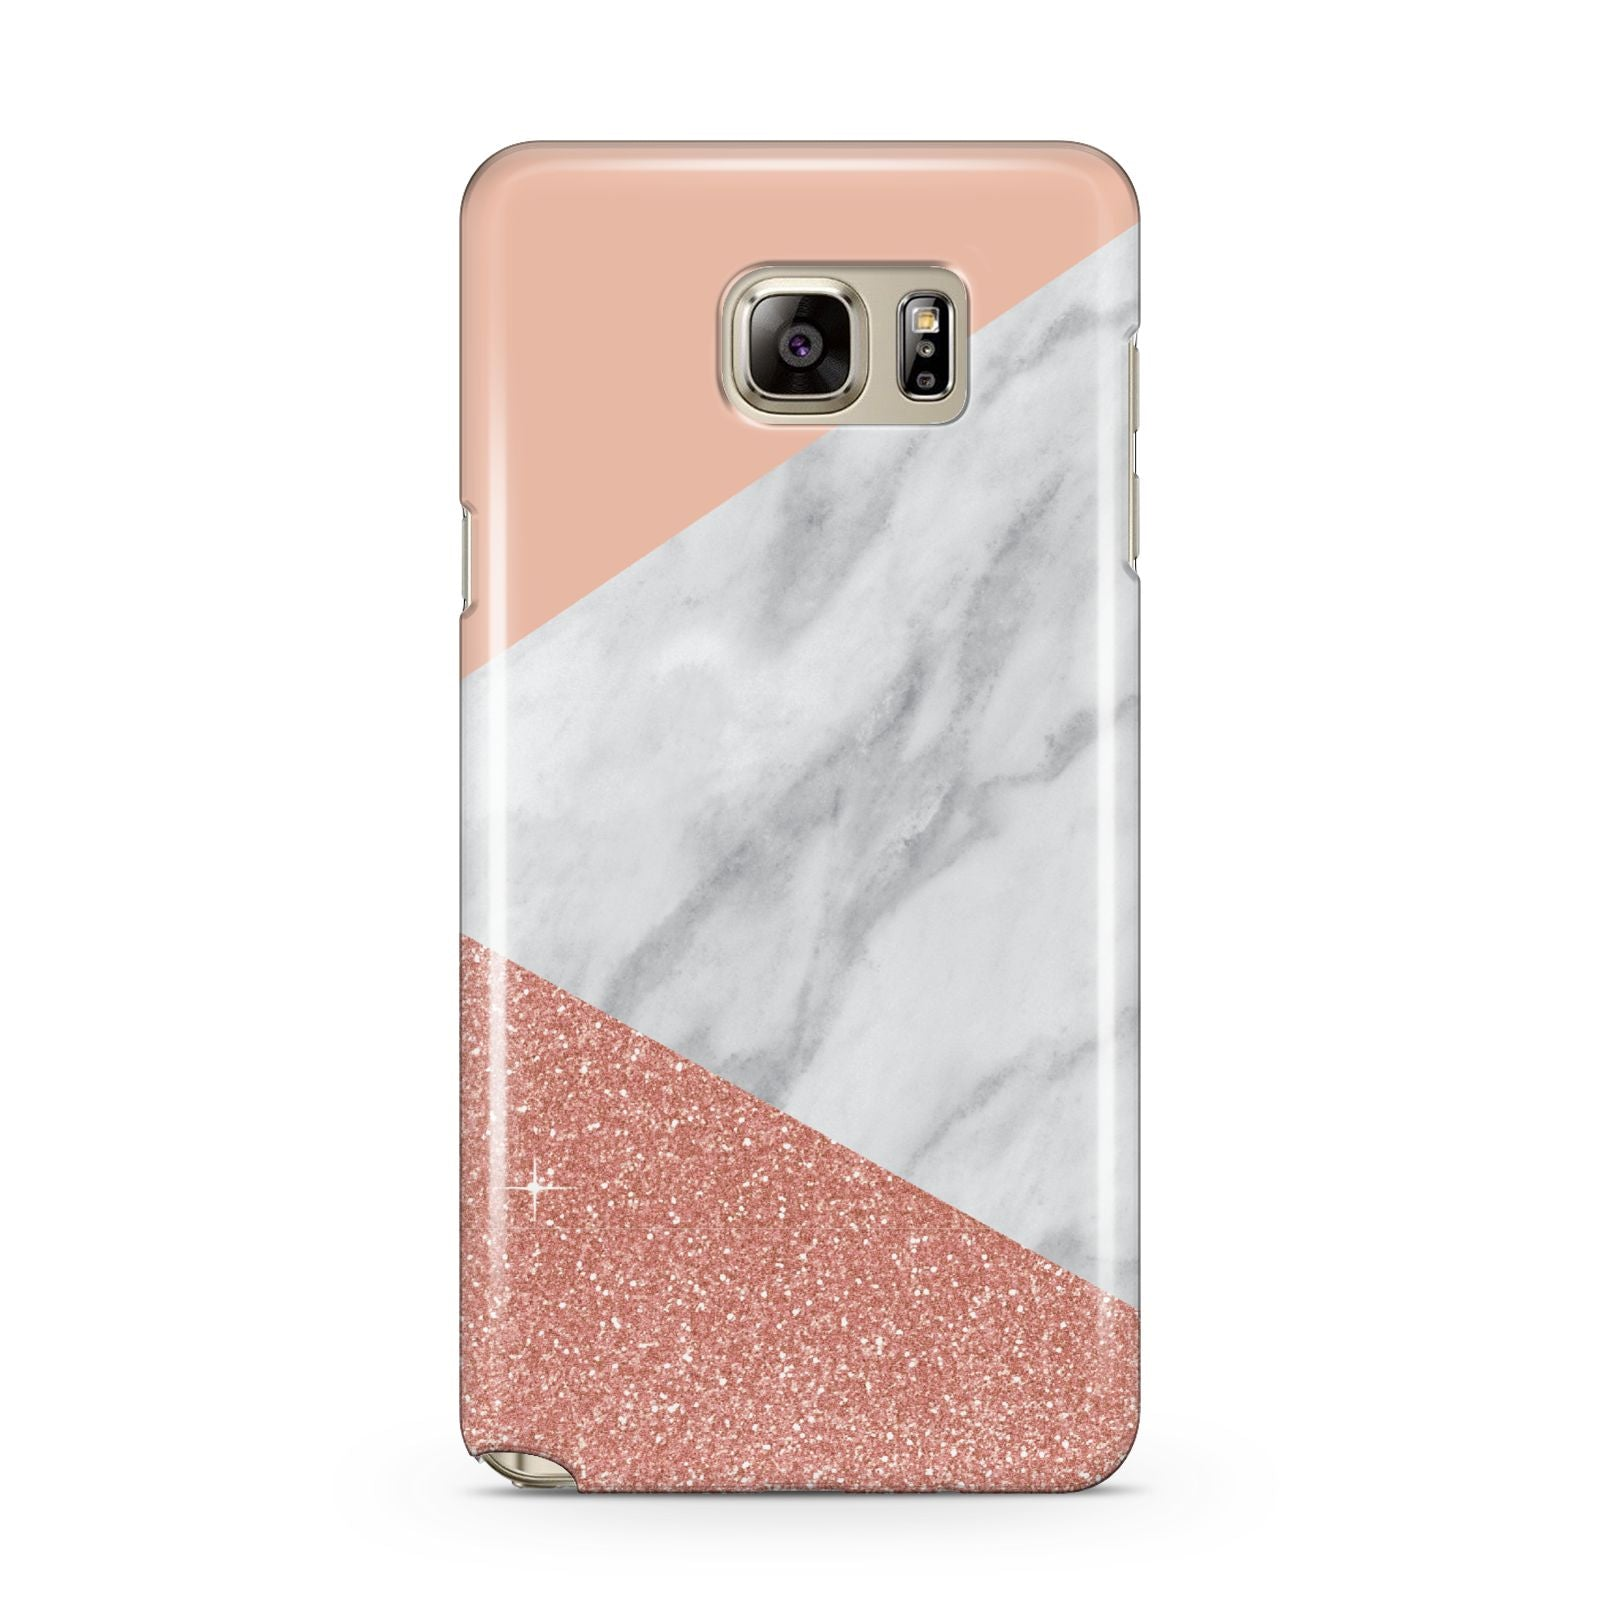 Marble White Rose Gold Samsung Galaxy Note 5 Case